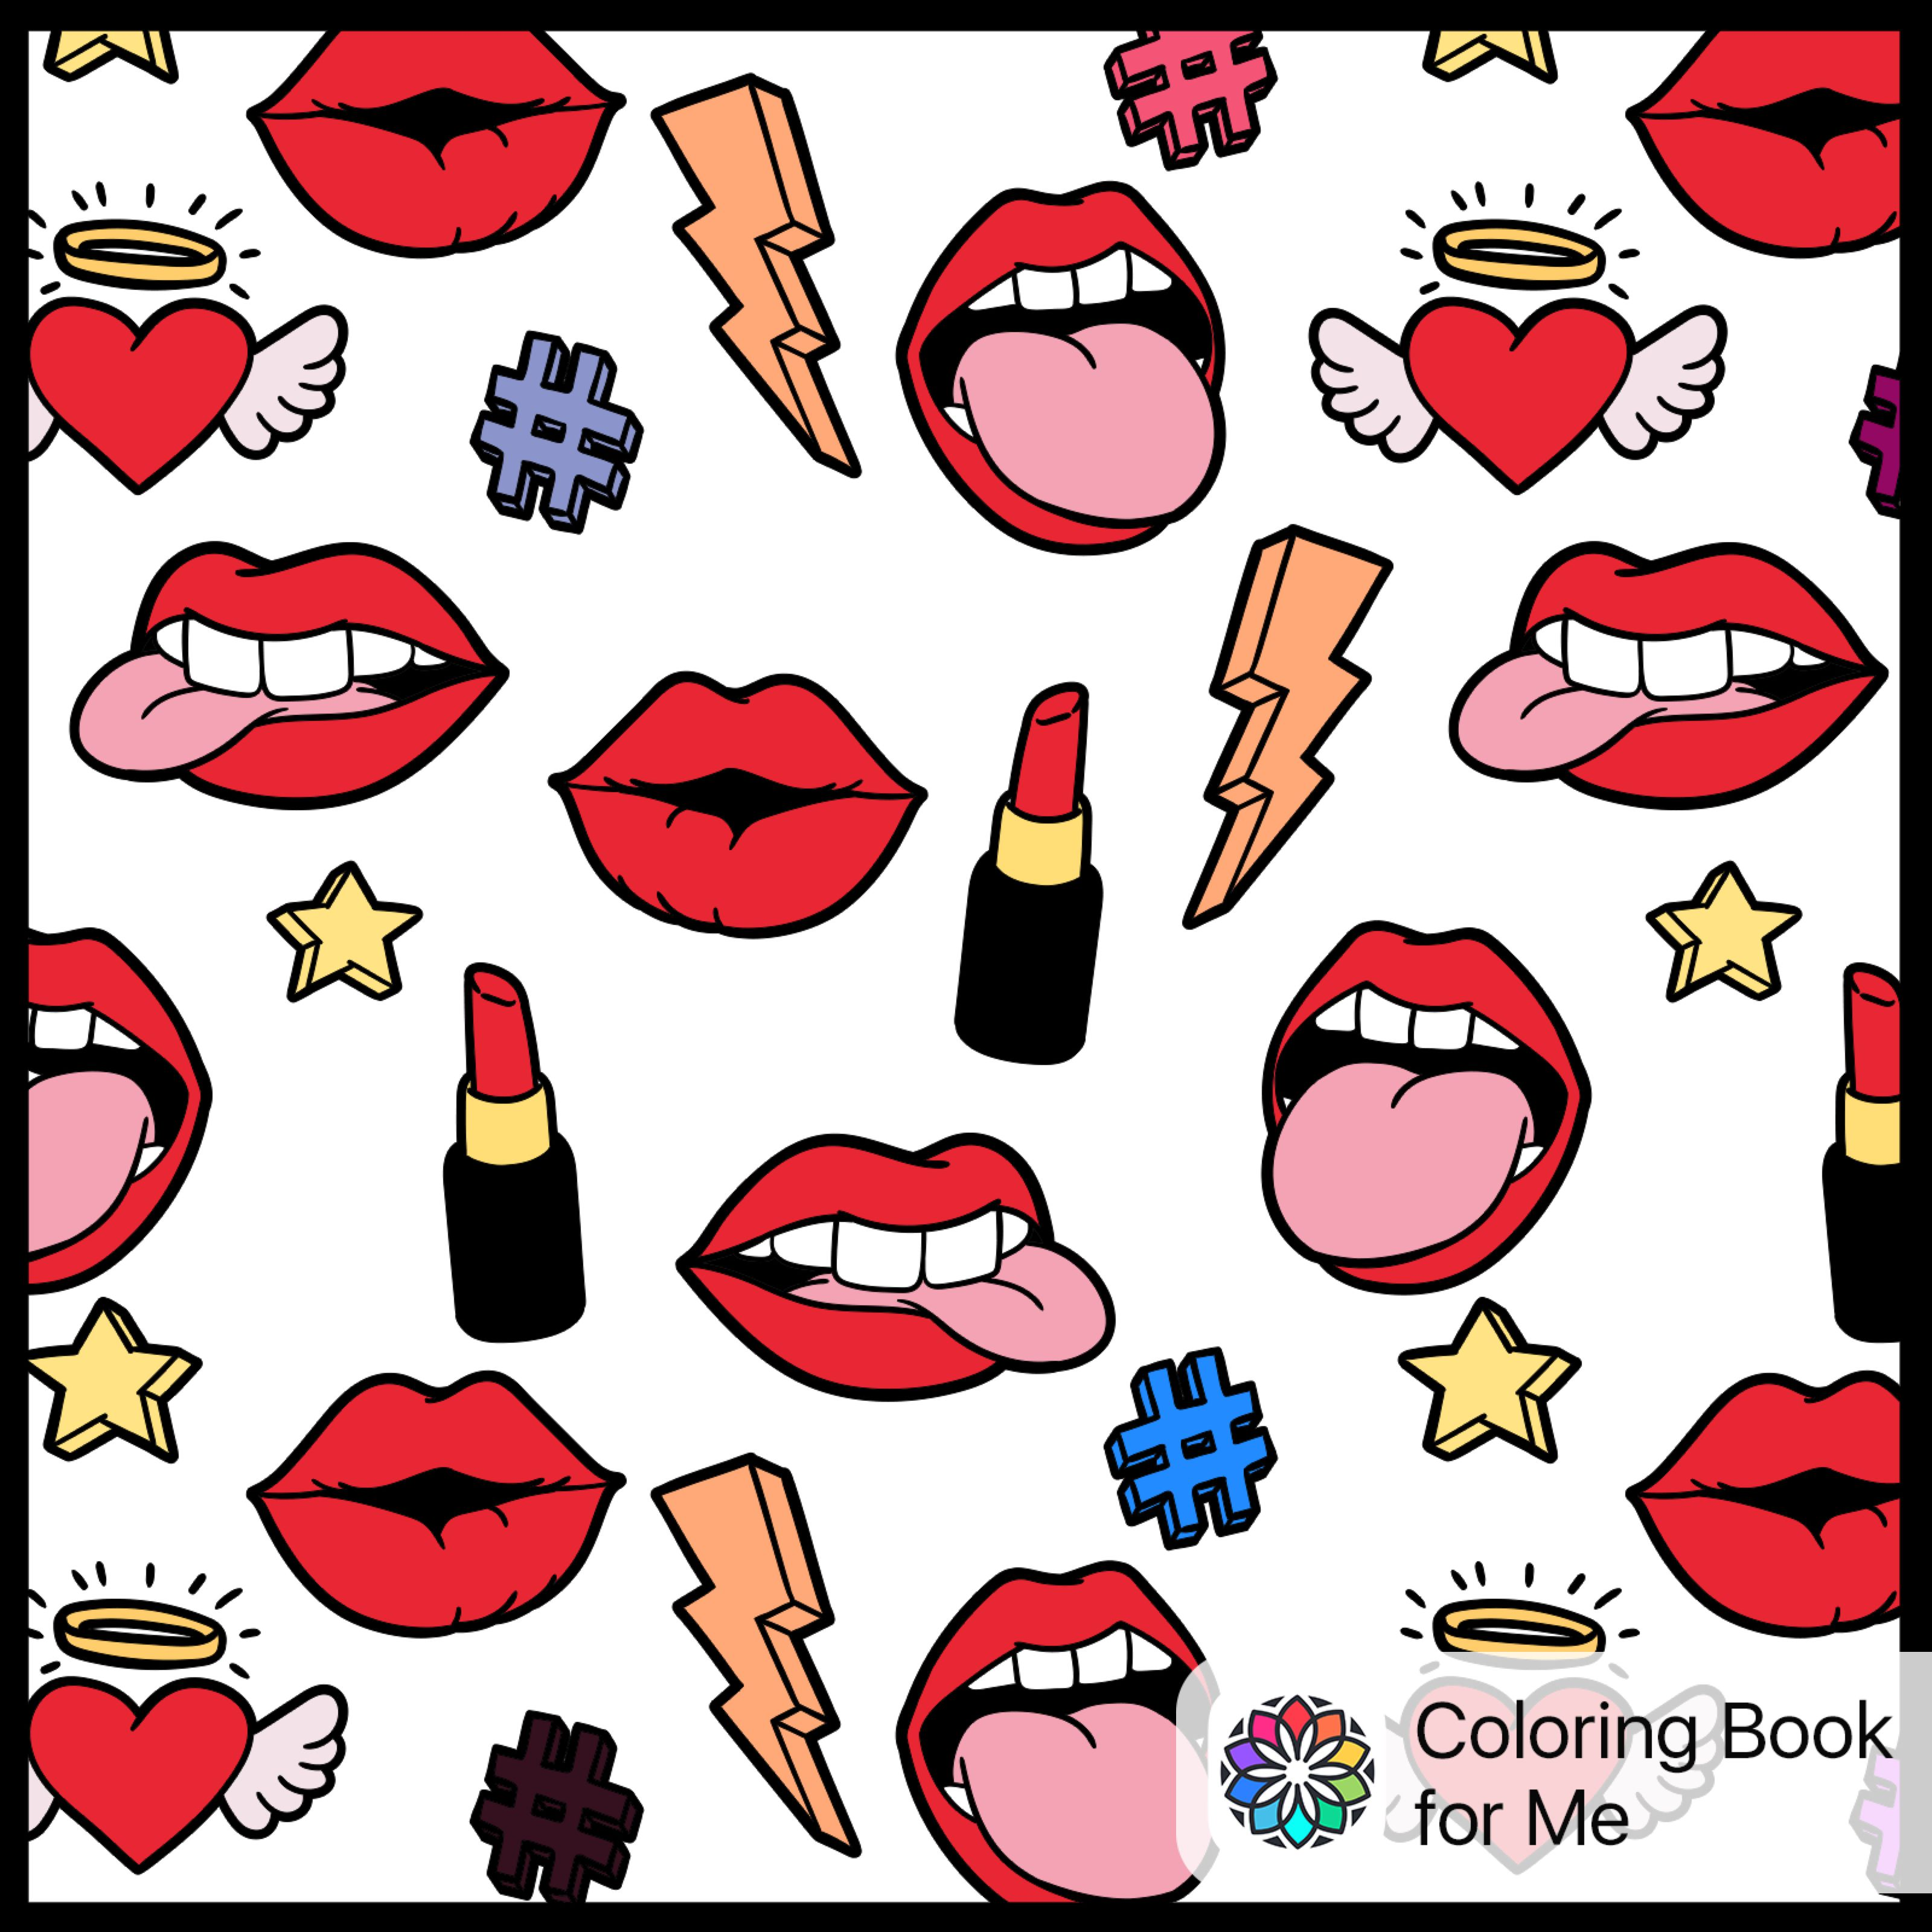 Colored with: Colouring Book for Me